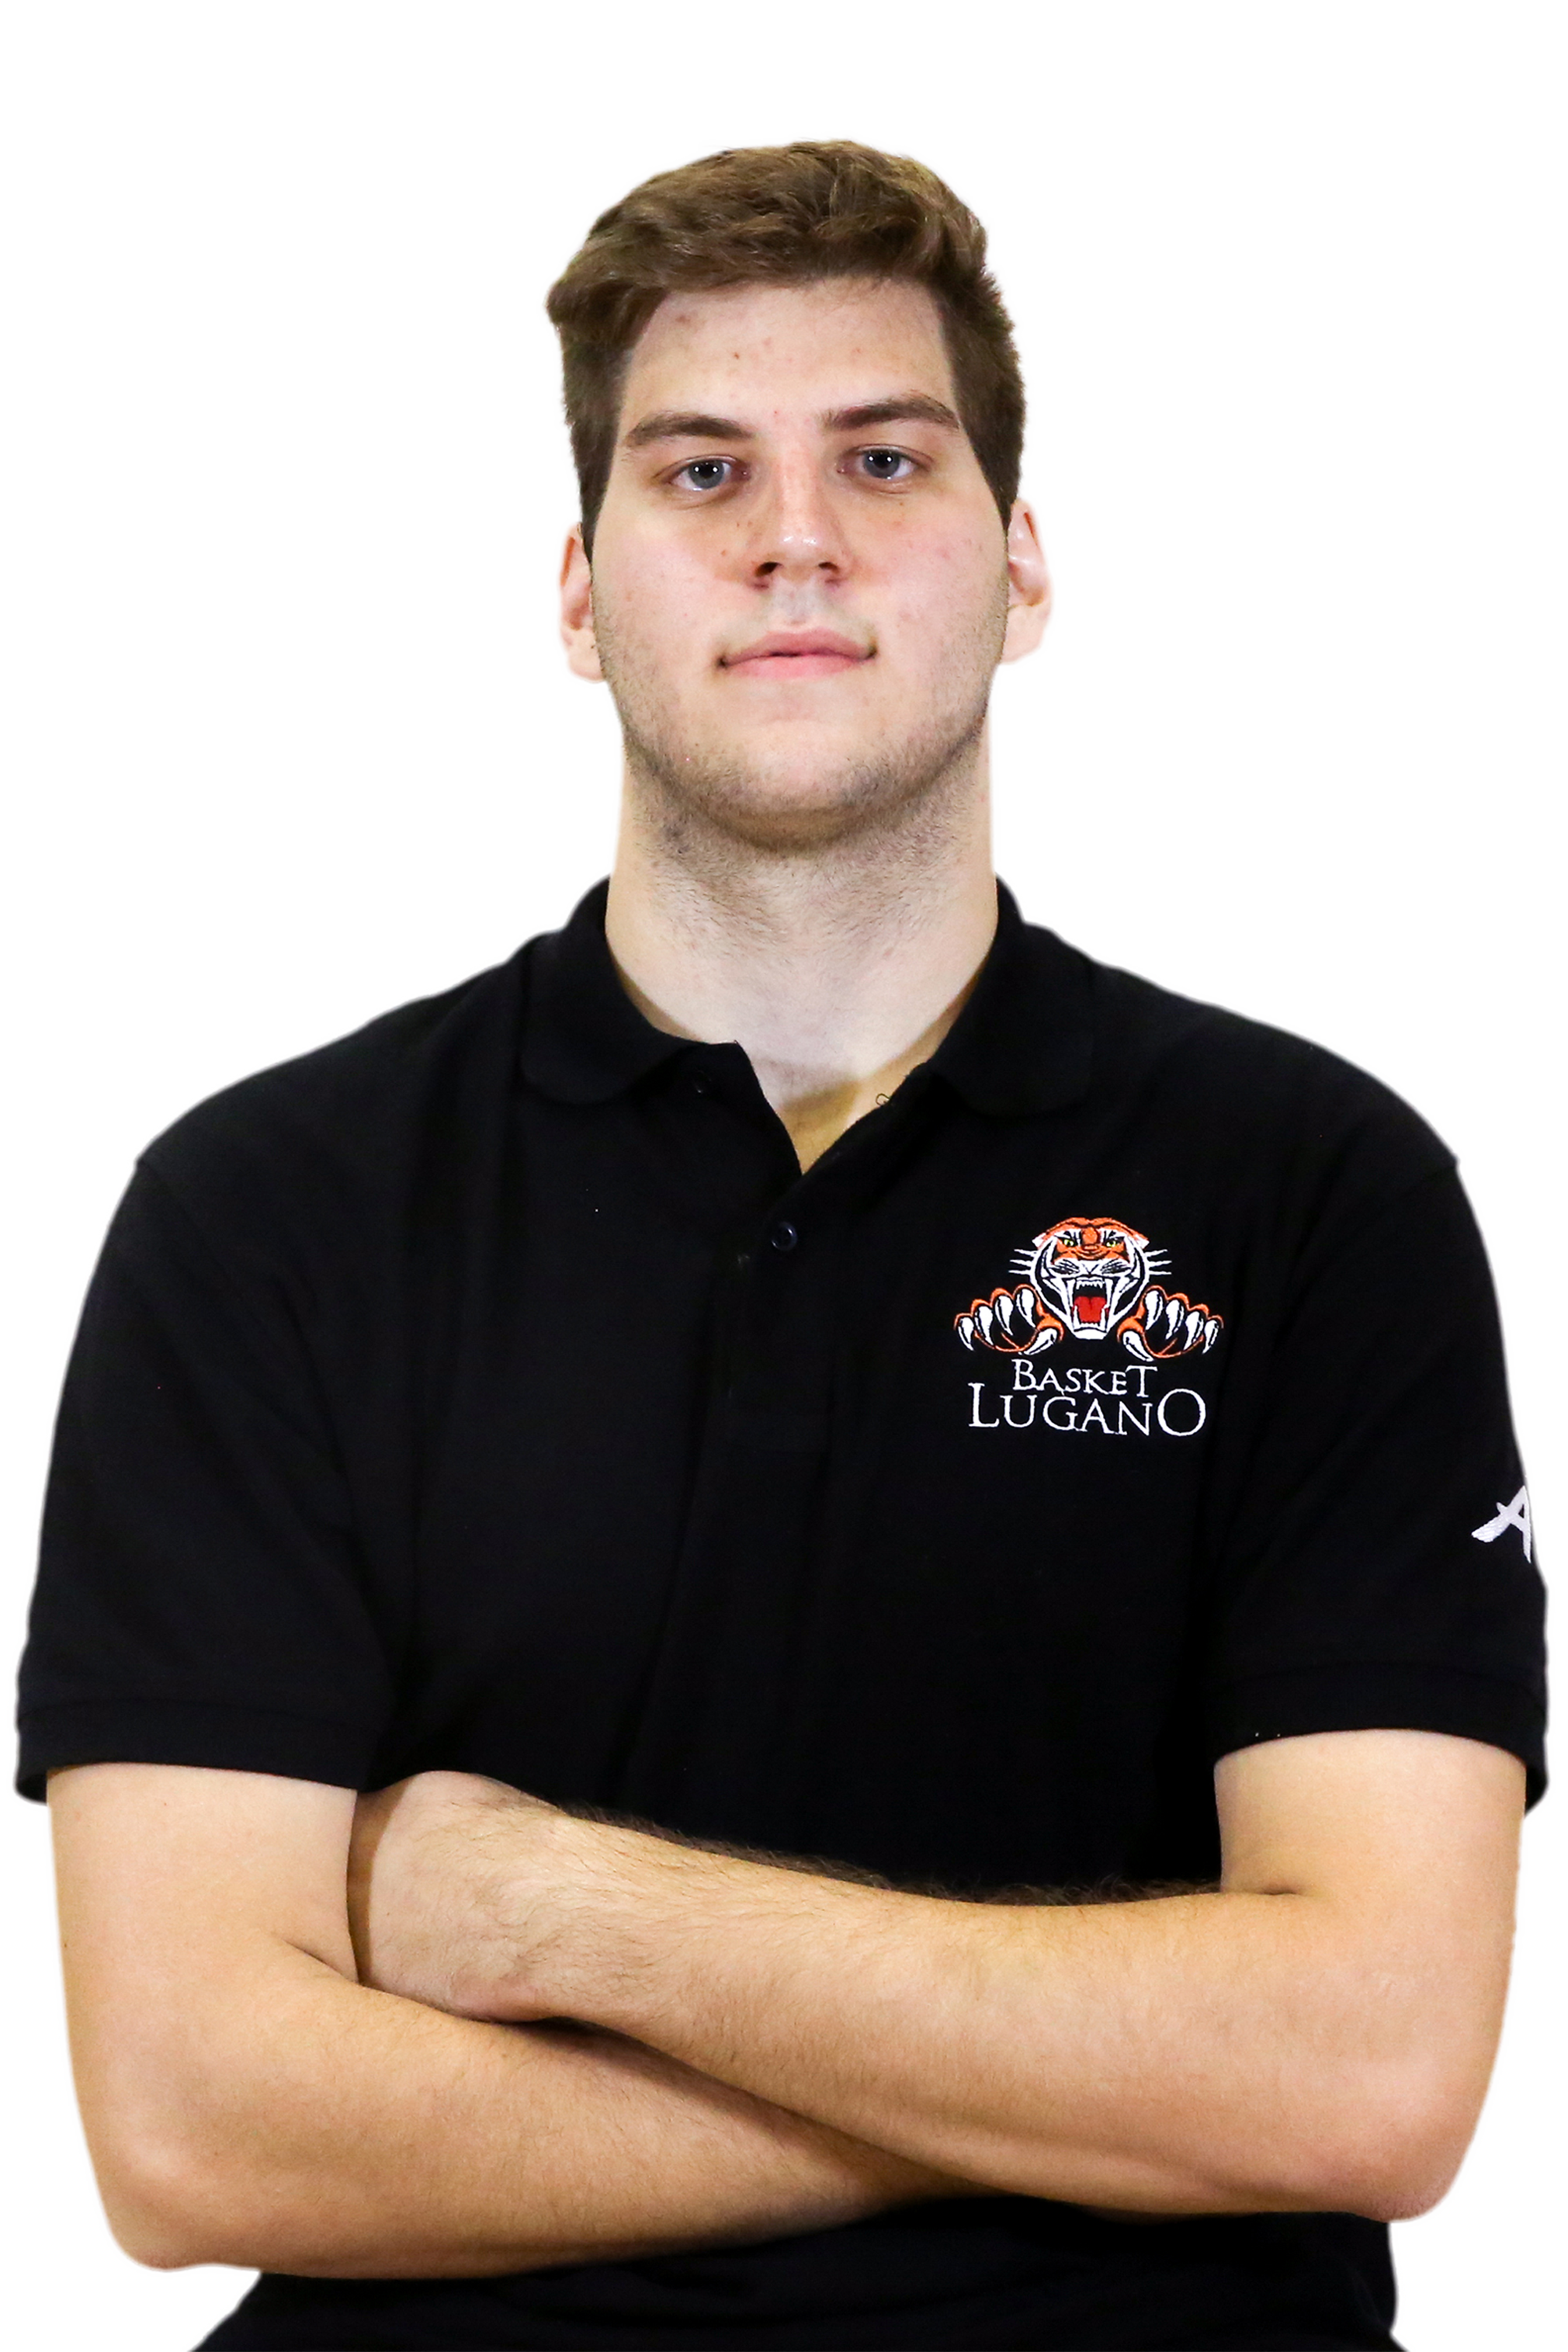 https://www.basketlugano.com/wp-content/uploads/2019/09/Paolo-1.png